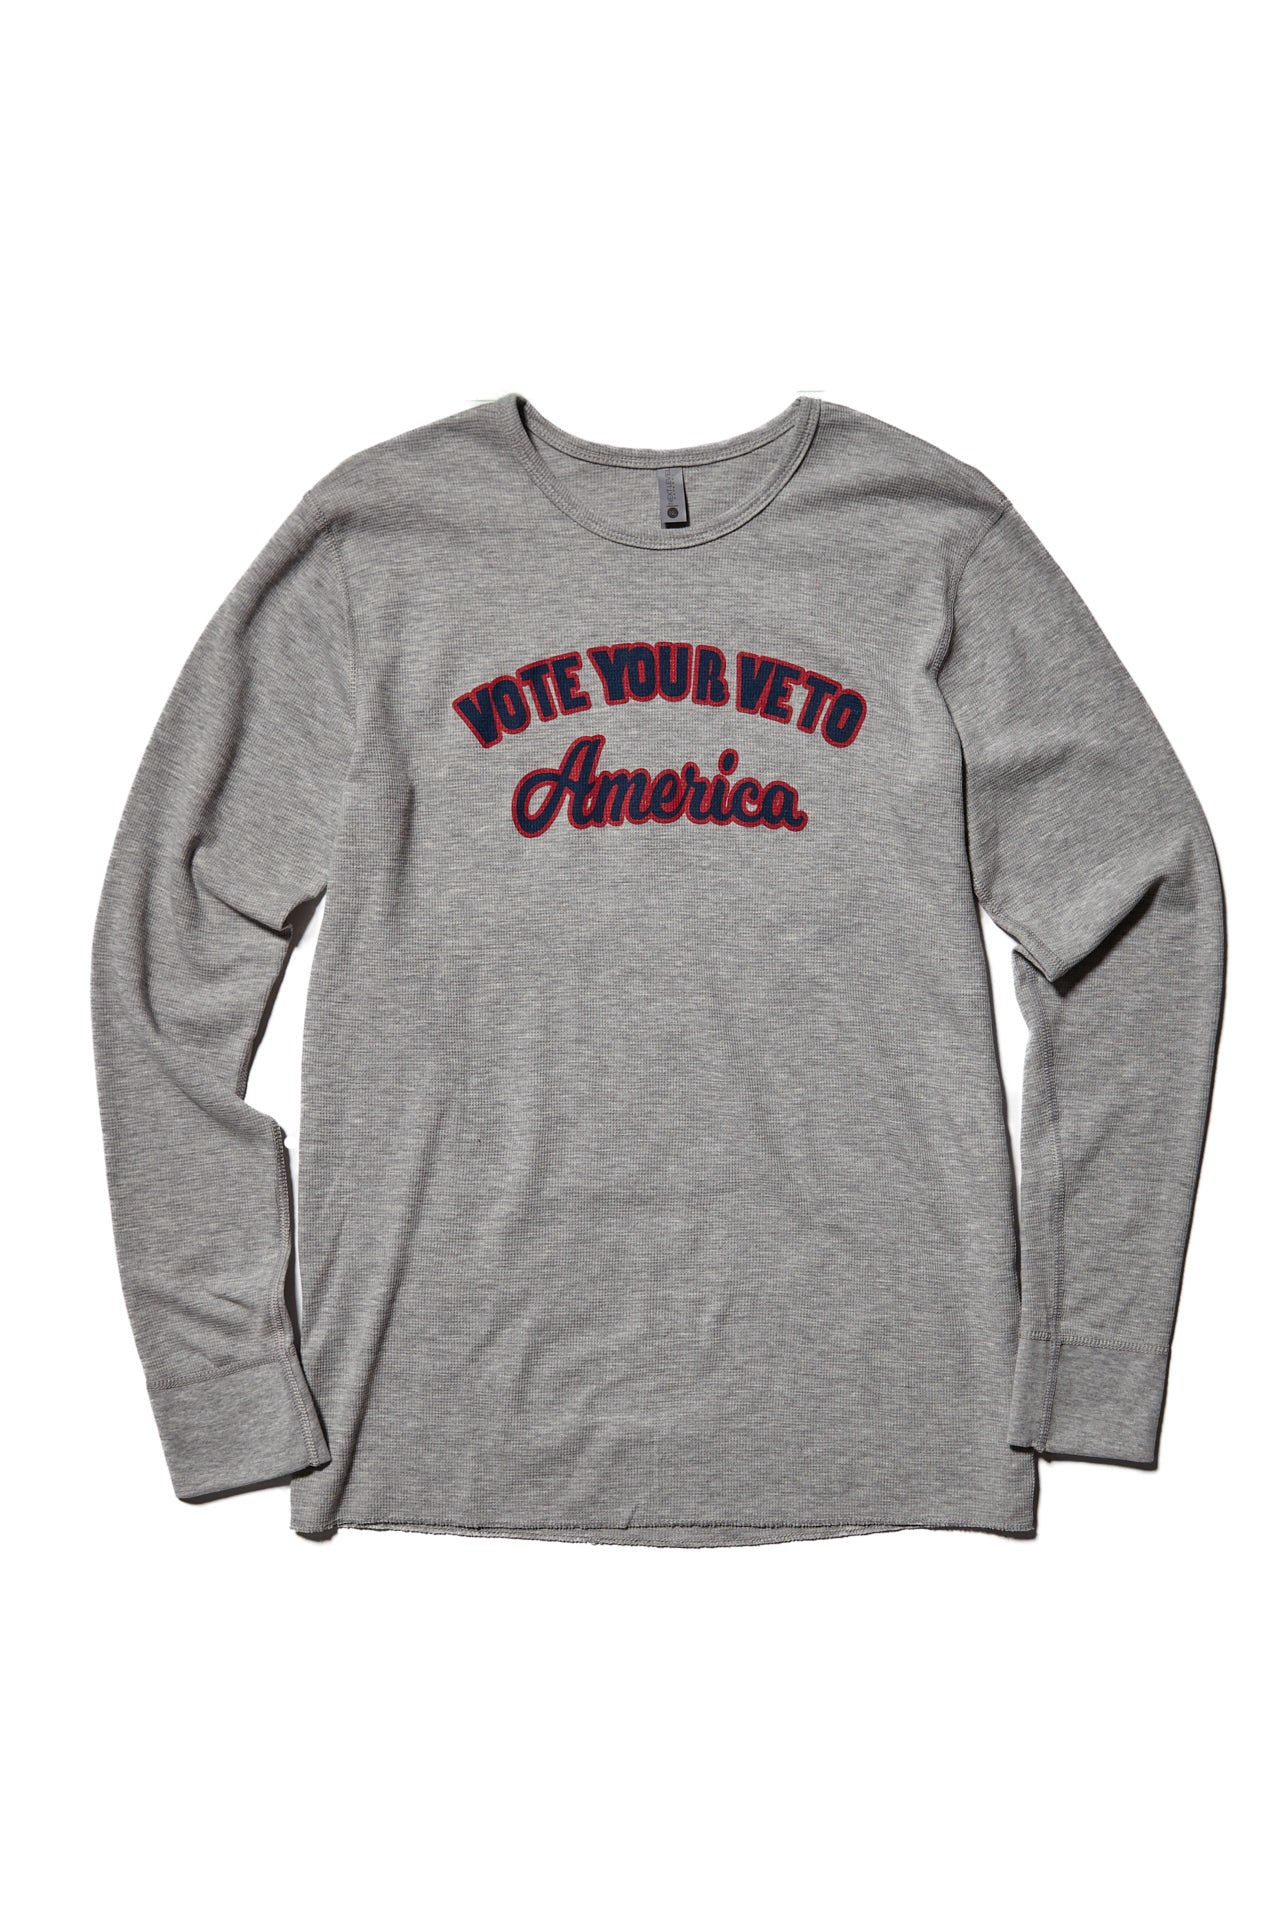 VOTE YOUR VETO AMERICA THERMAL